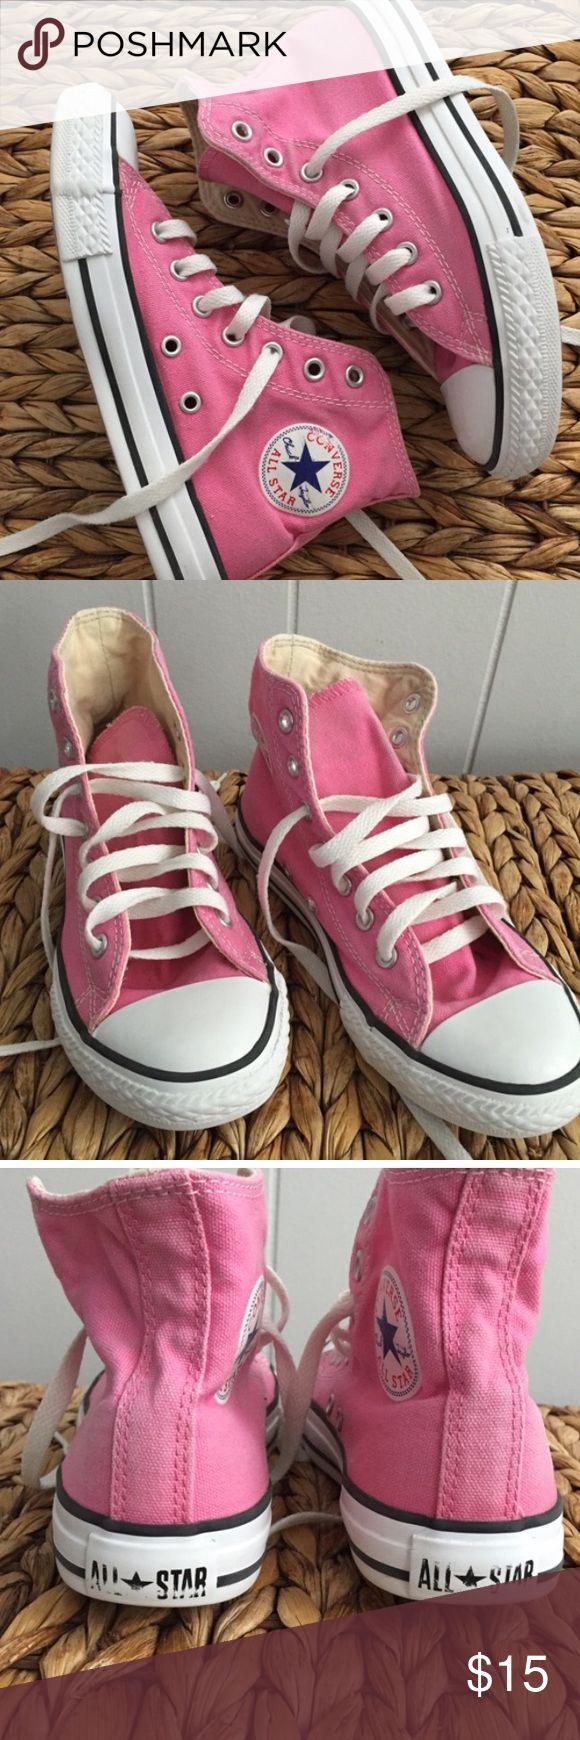 Pink High Top Converse youth 2 Pink High Top Converse Chuck Taylor's. Size youth 2. Converse Shoes Sneakers